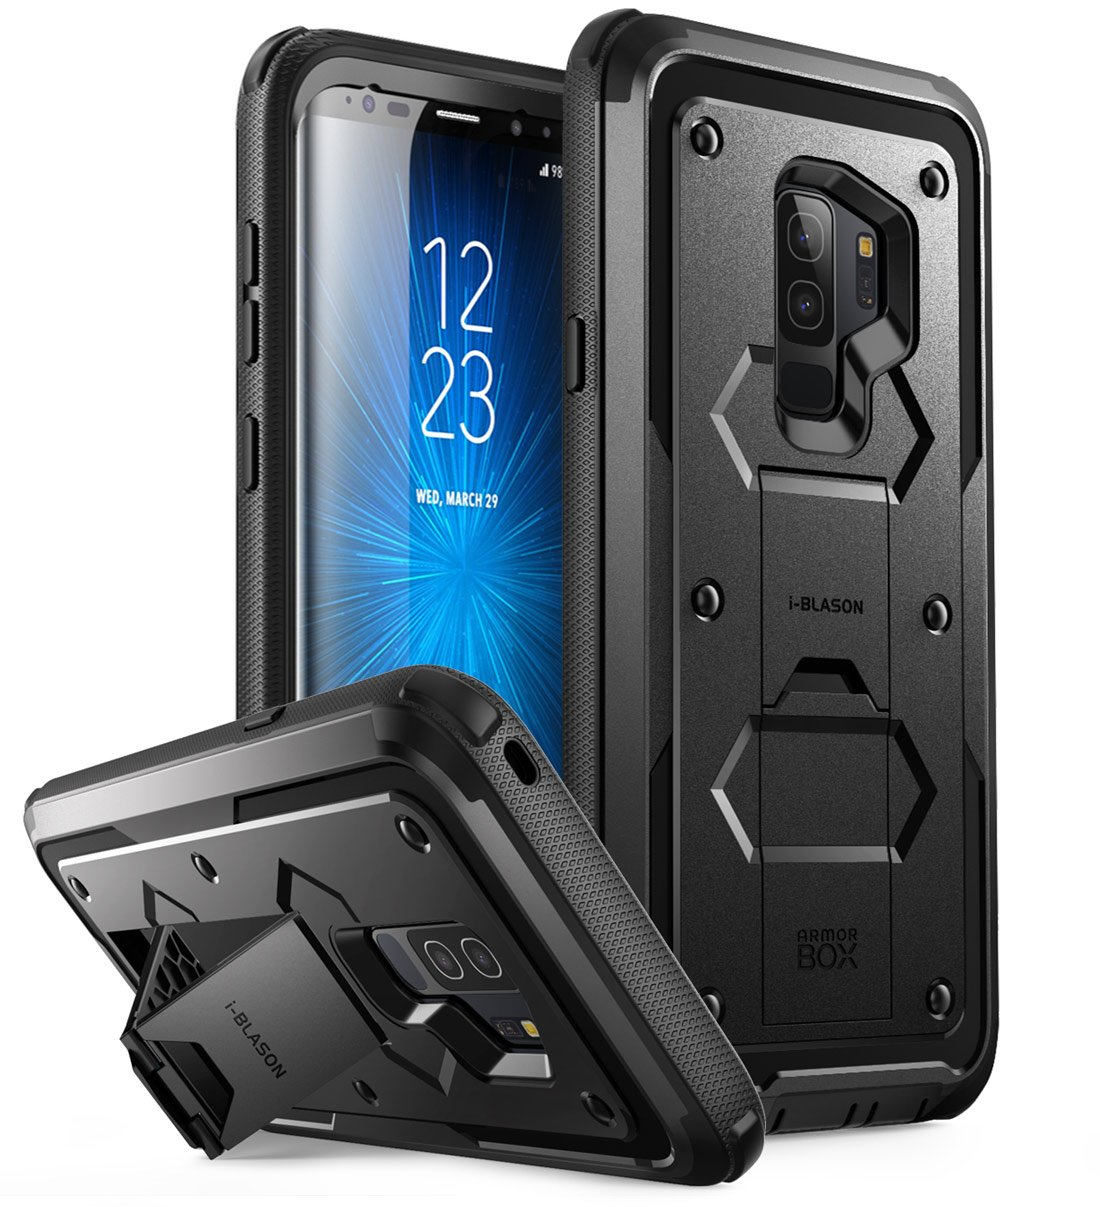 Galaxy S9+ Plus Case, i-Blason [Armorbox] [Full body] [Heavy Duty Protection ] [Kickstand] Shock Reduction/Bumper Case WITHOUT Screen Protector for Samsung Galaxy S9+ Plus (2018 Release) (Black)